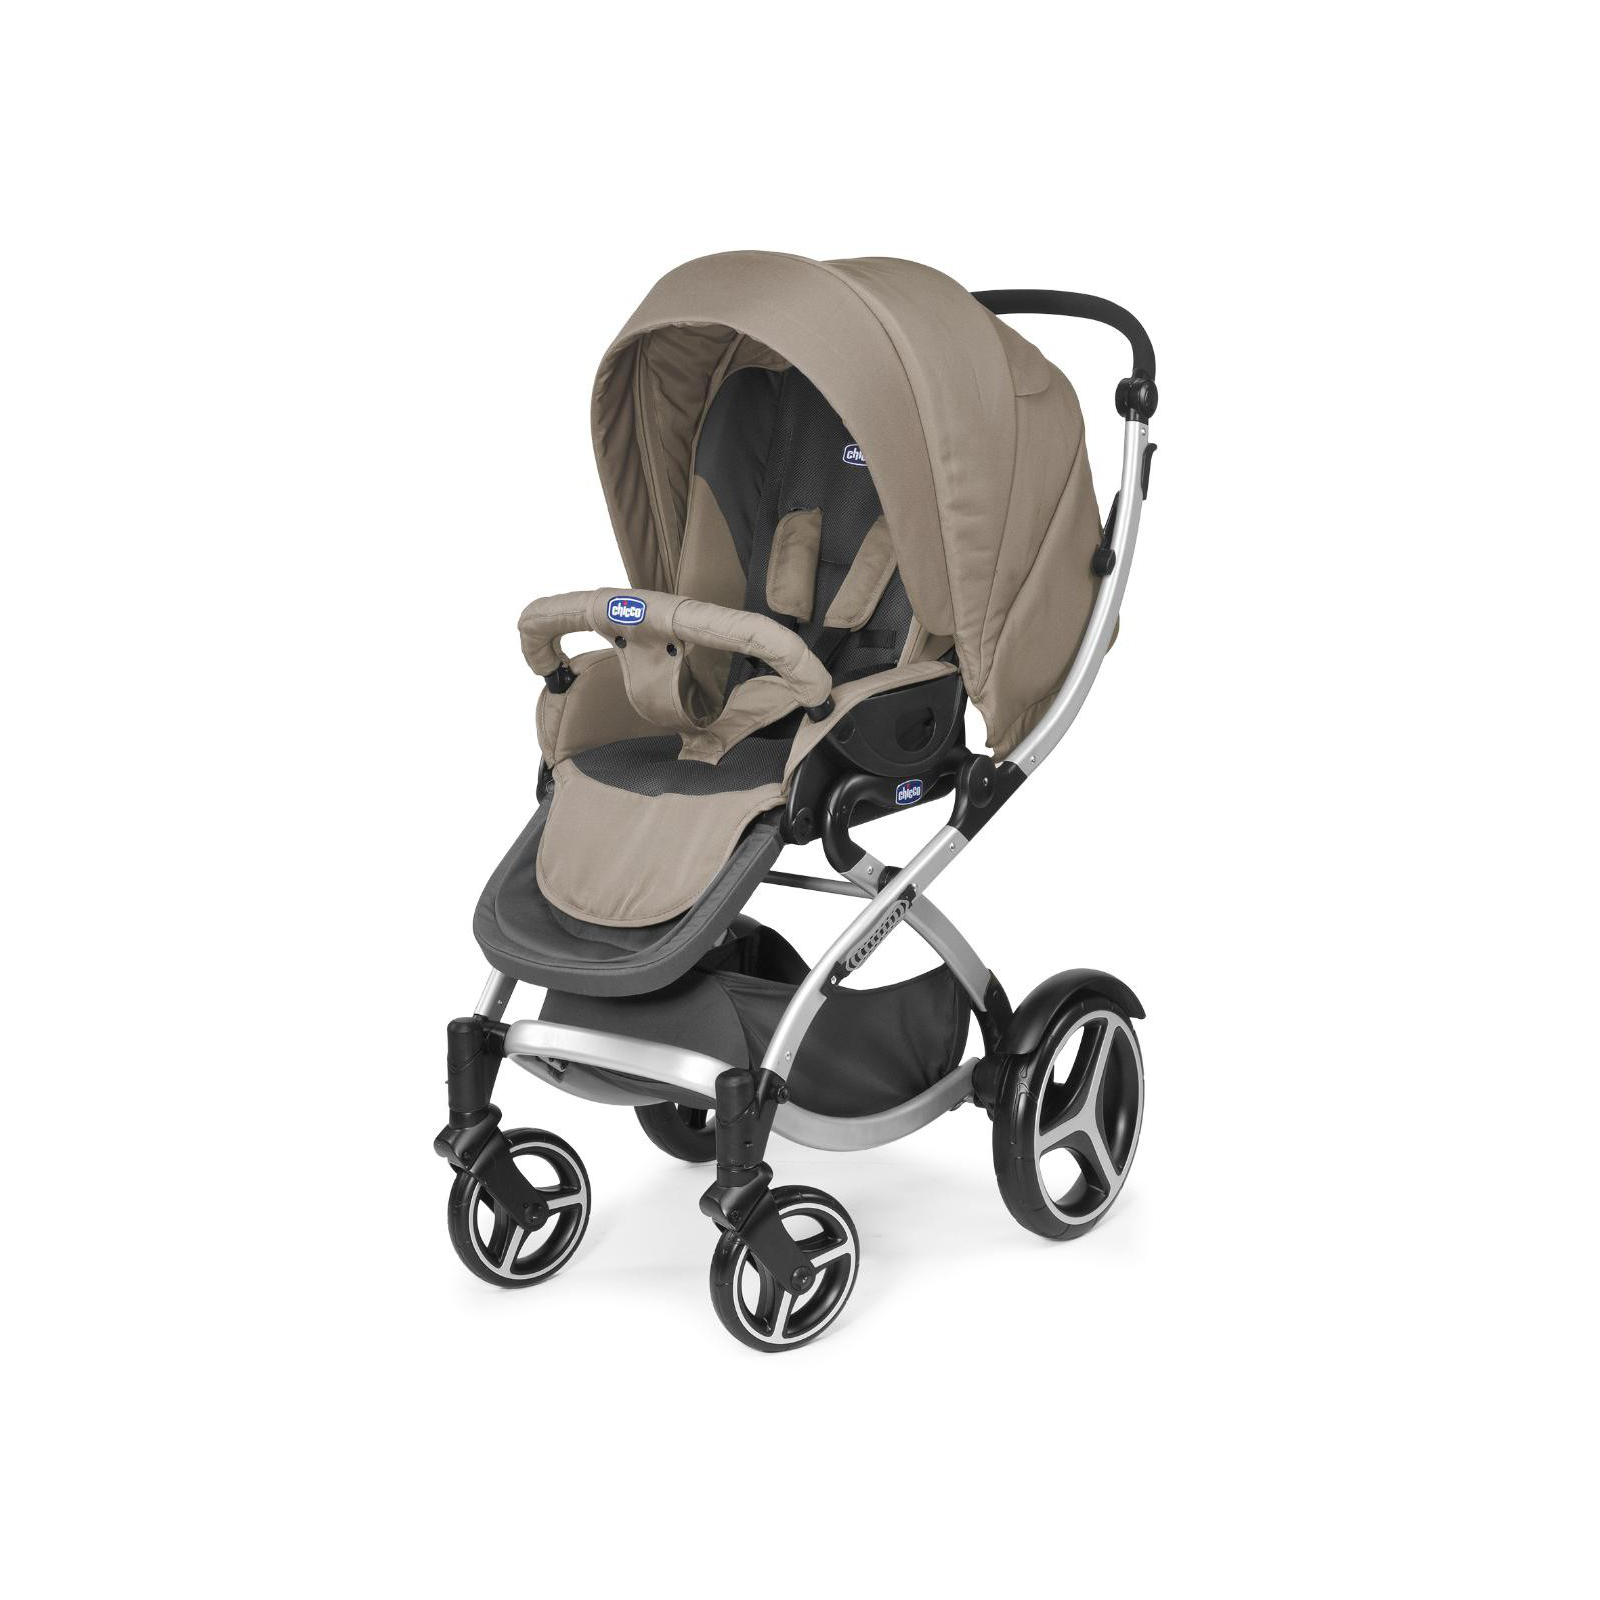 ������� Chicco Artic Stroller Complete 2 � 1 beige